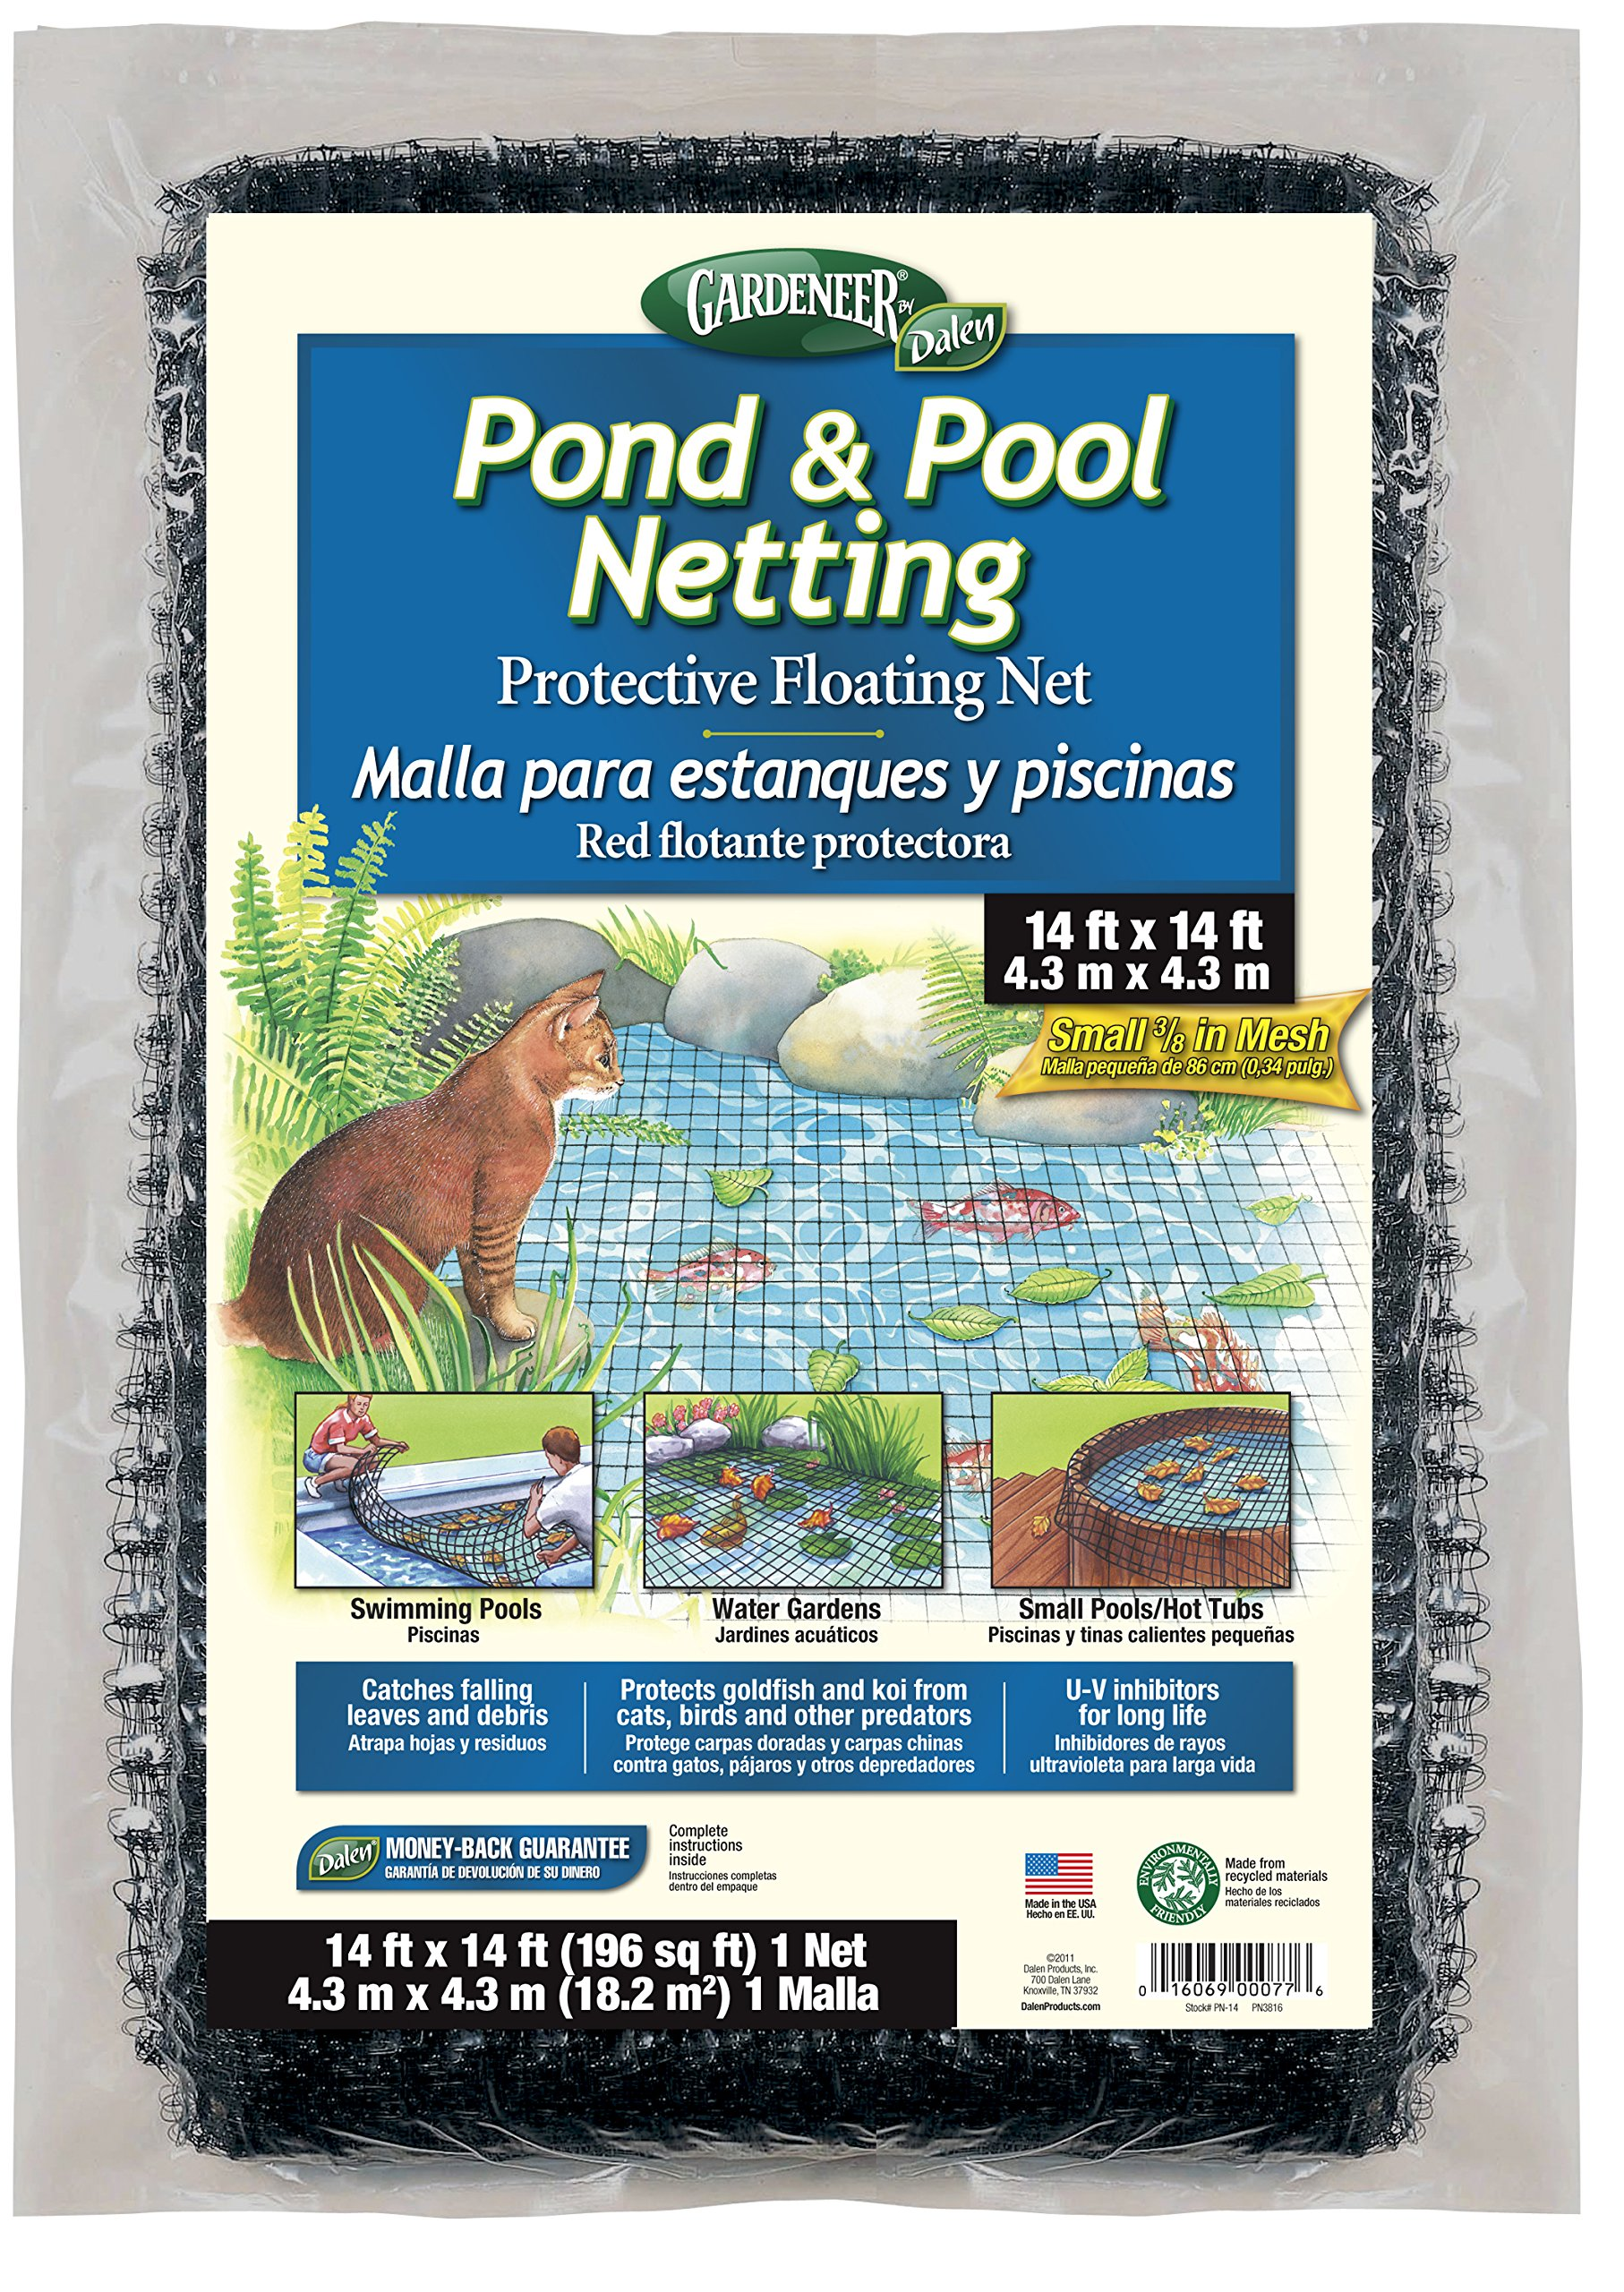 Dalen PN-14 Gardeneer By Pond & Pool Netting Protective Floating Net, 14' x 14'